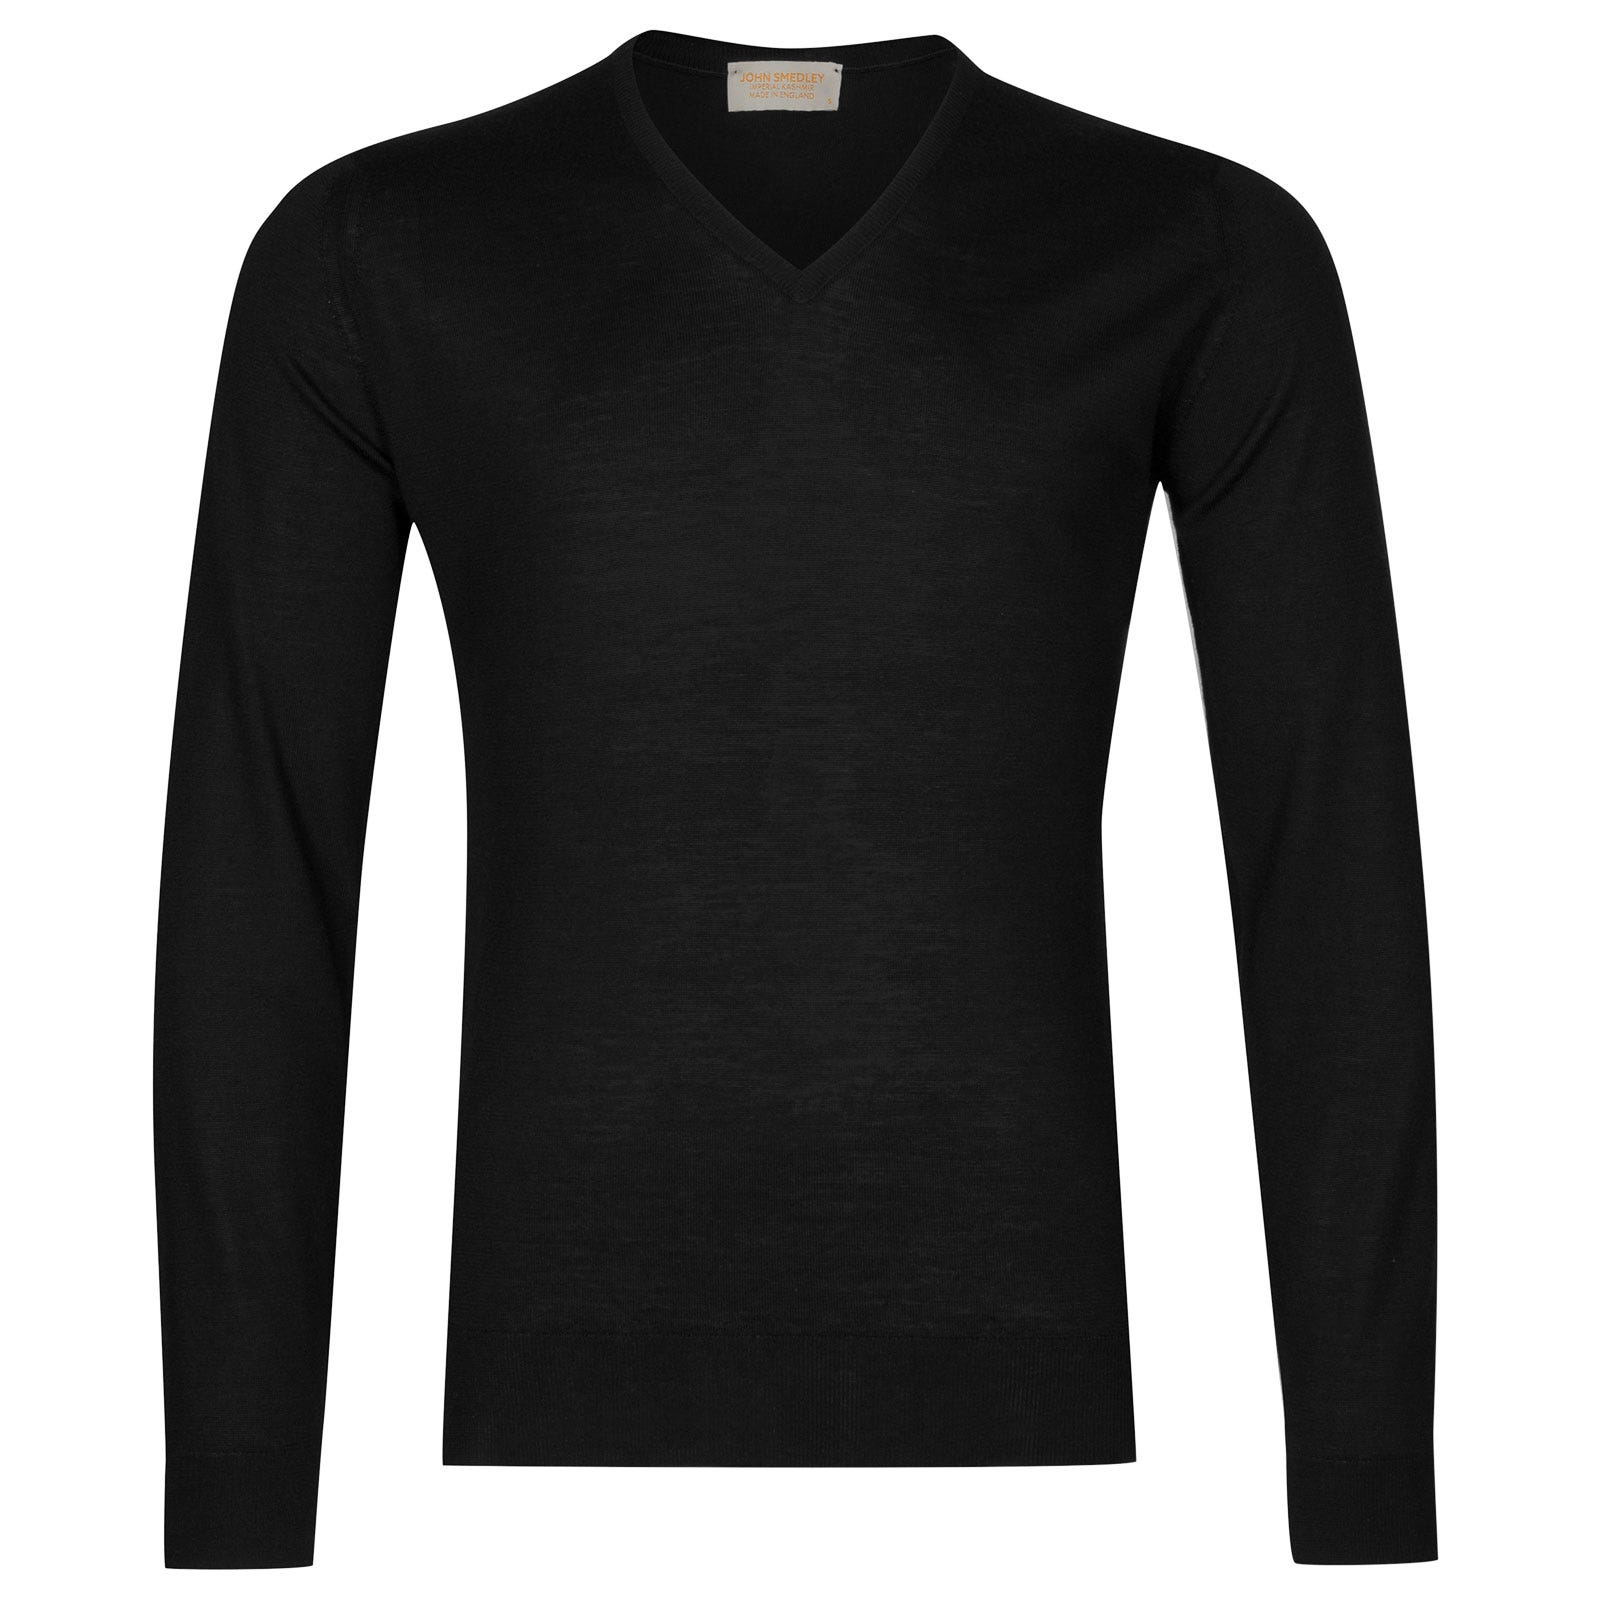 John Smedley newark Merino Wool and Cashmere Pullover in Black-XXL